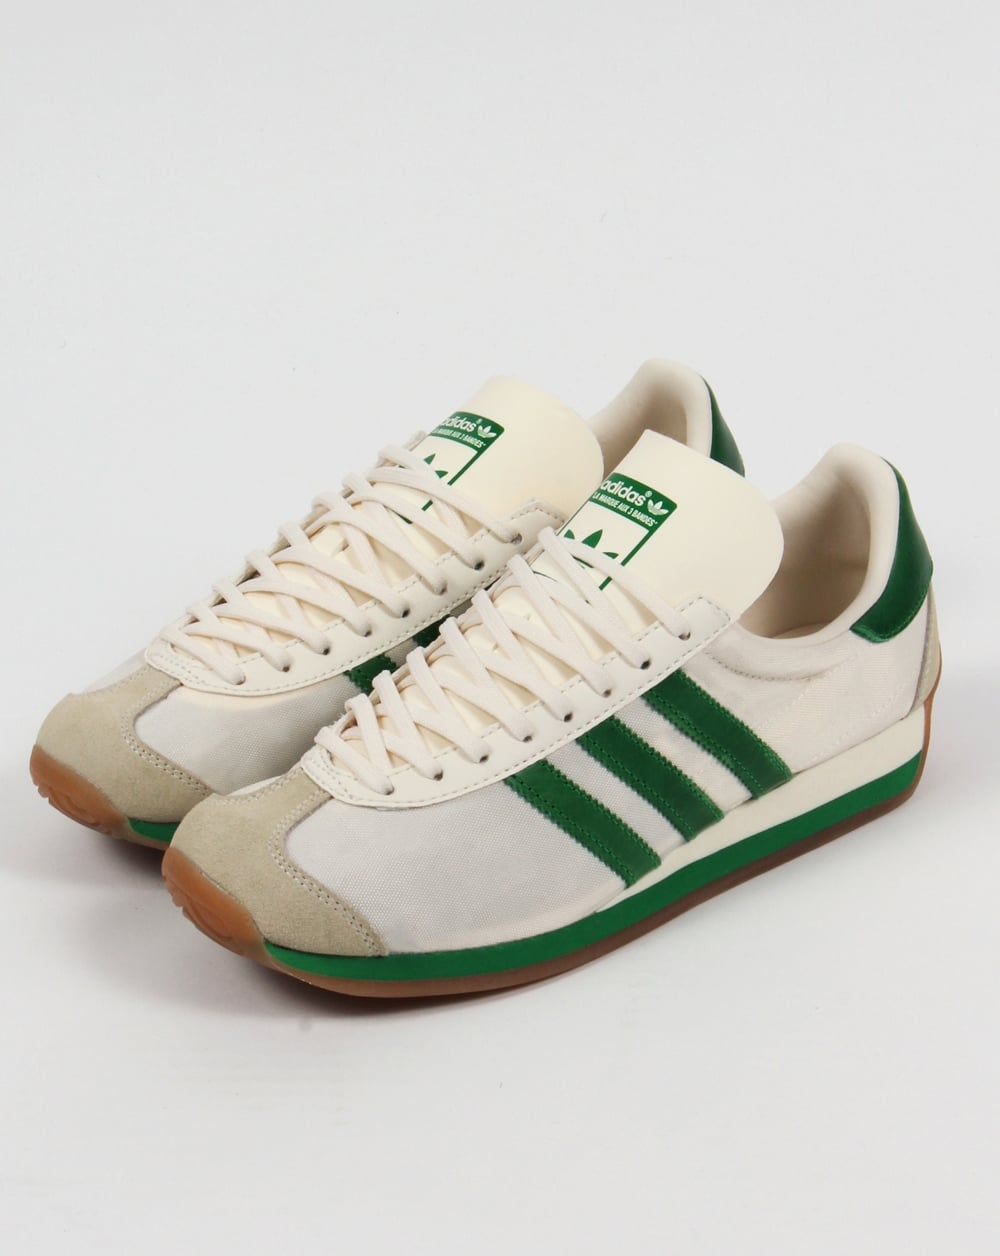 69694578afc7 Adidas Country OG Trainers Chalk White Green